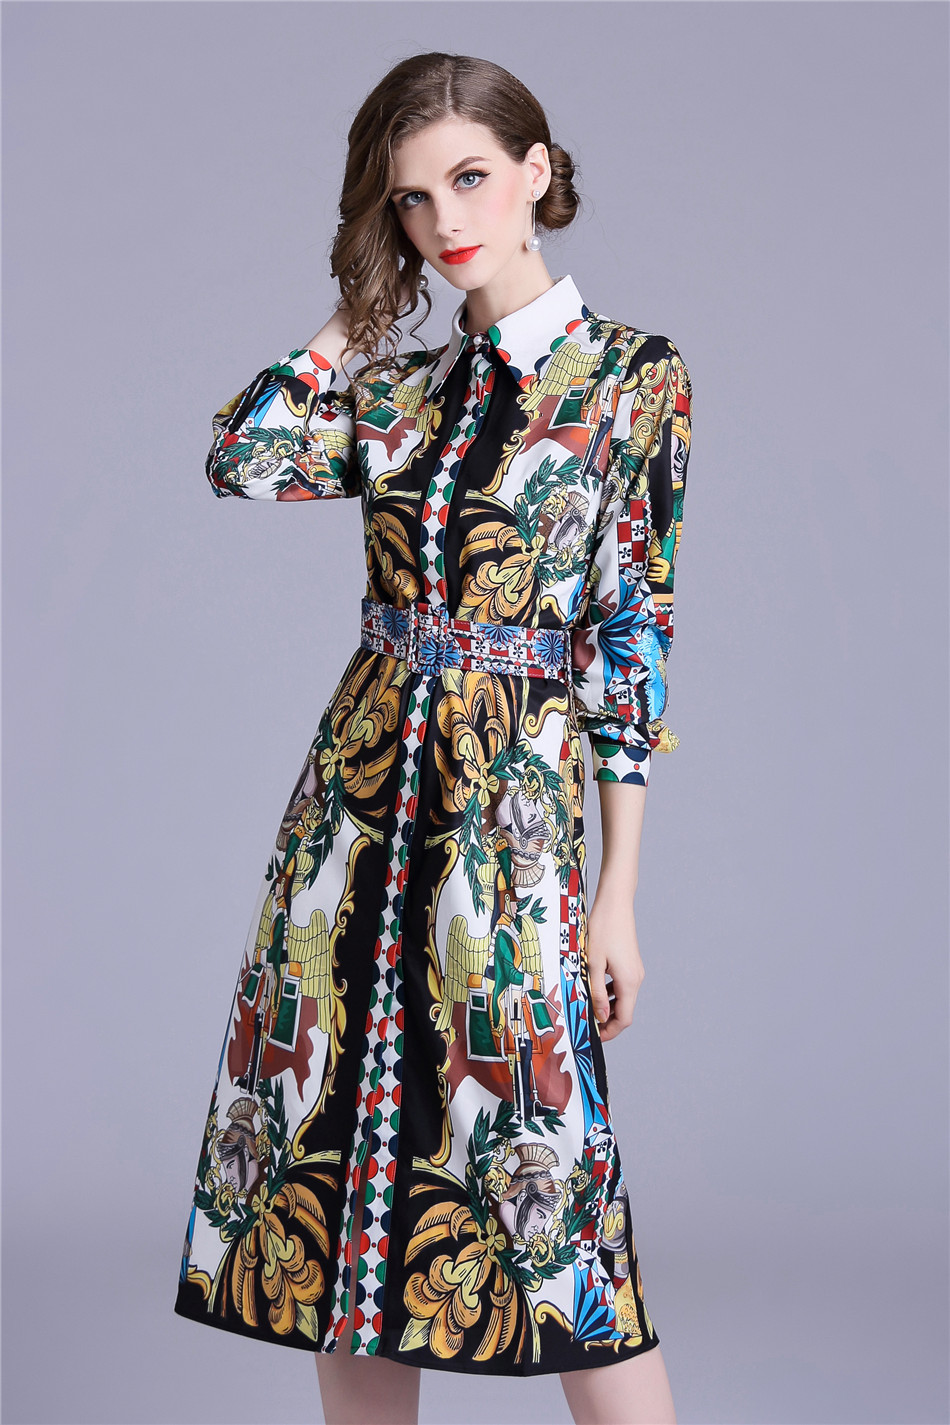 Remarkable, valuable asian print dresses sorry, that has